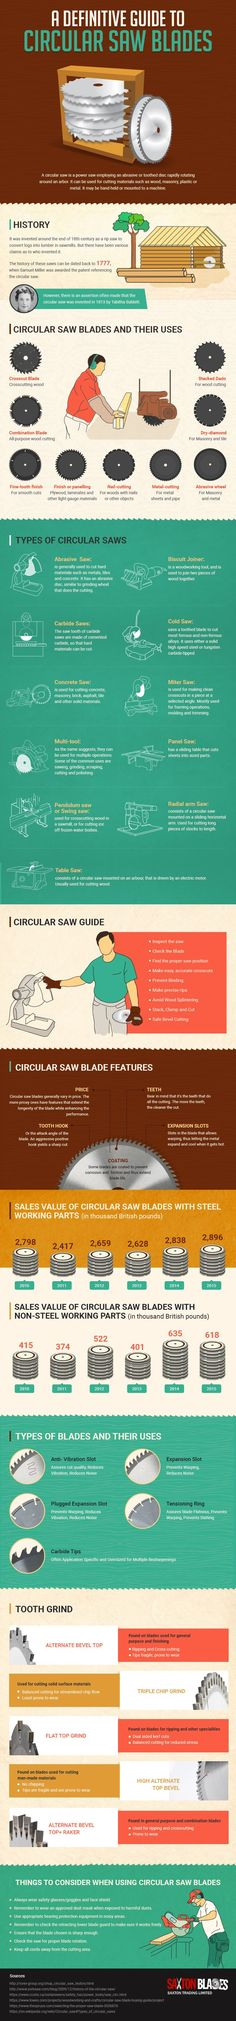 circular saw blade history #infographic #diy #construction #homebuilding #homeimprovement #building #circularsaw #saw #powertools #multitools #doityourself #carpentry #woodworking